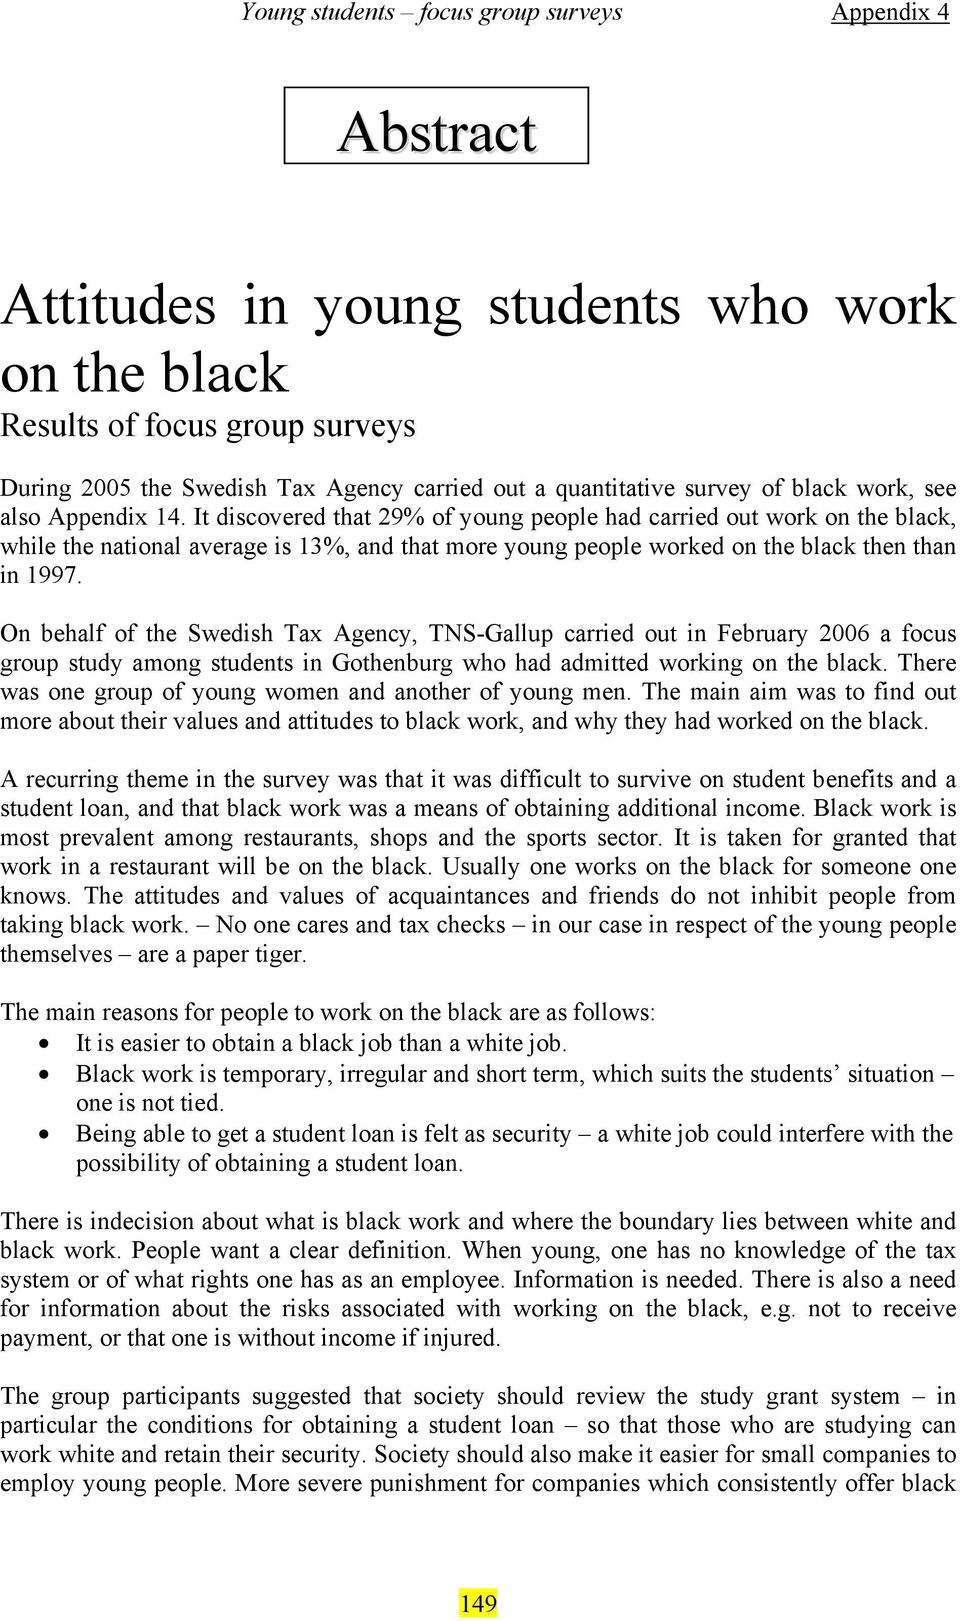 On behalf of the Swedish Tax Agency, TNS-Gallup carried out in February 2006 a focus group study among students in Gothenburg who had admitted working on the black.